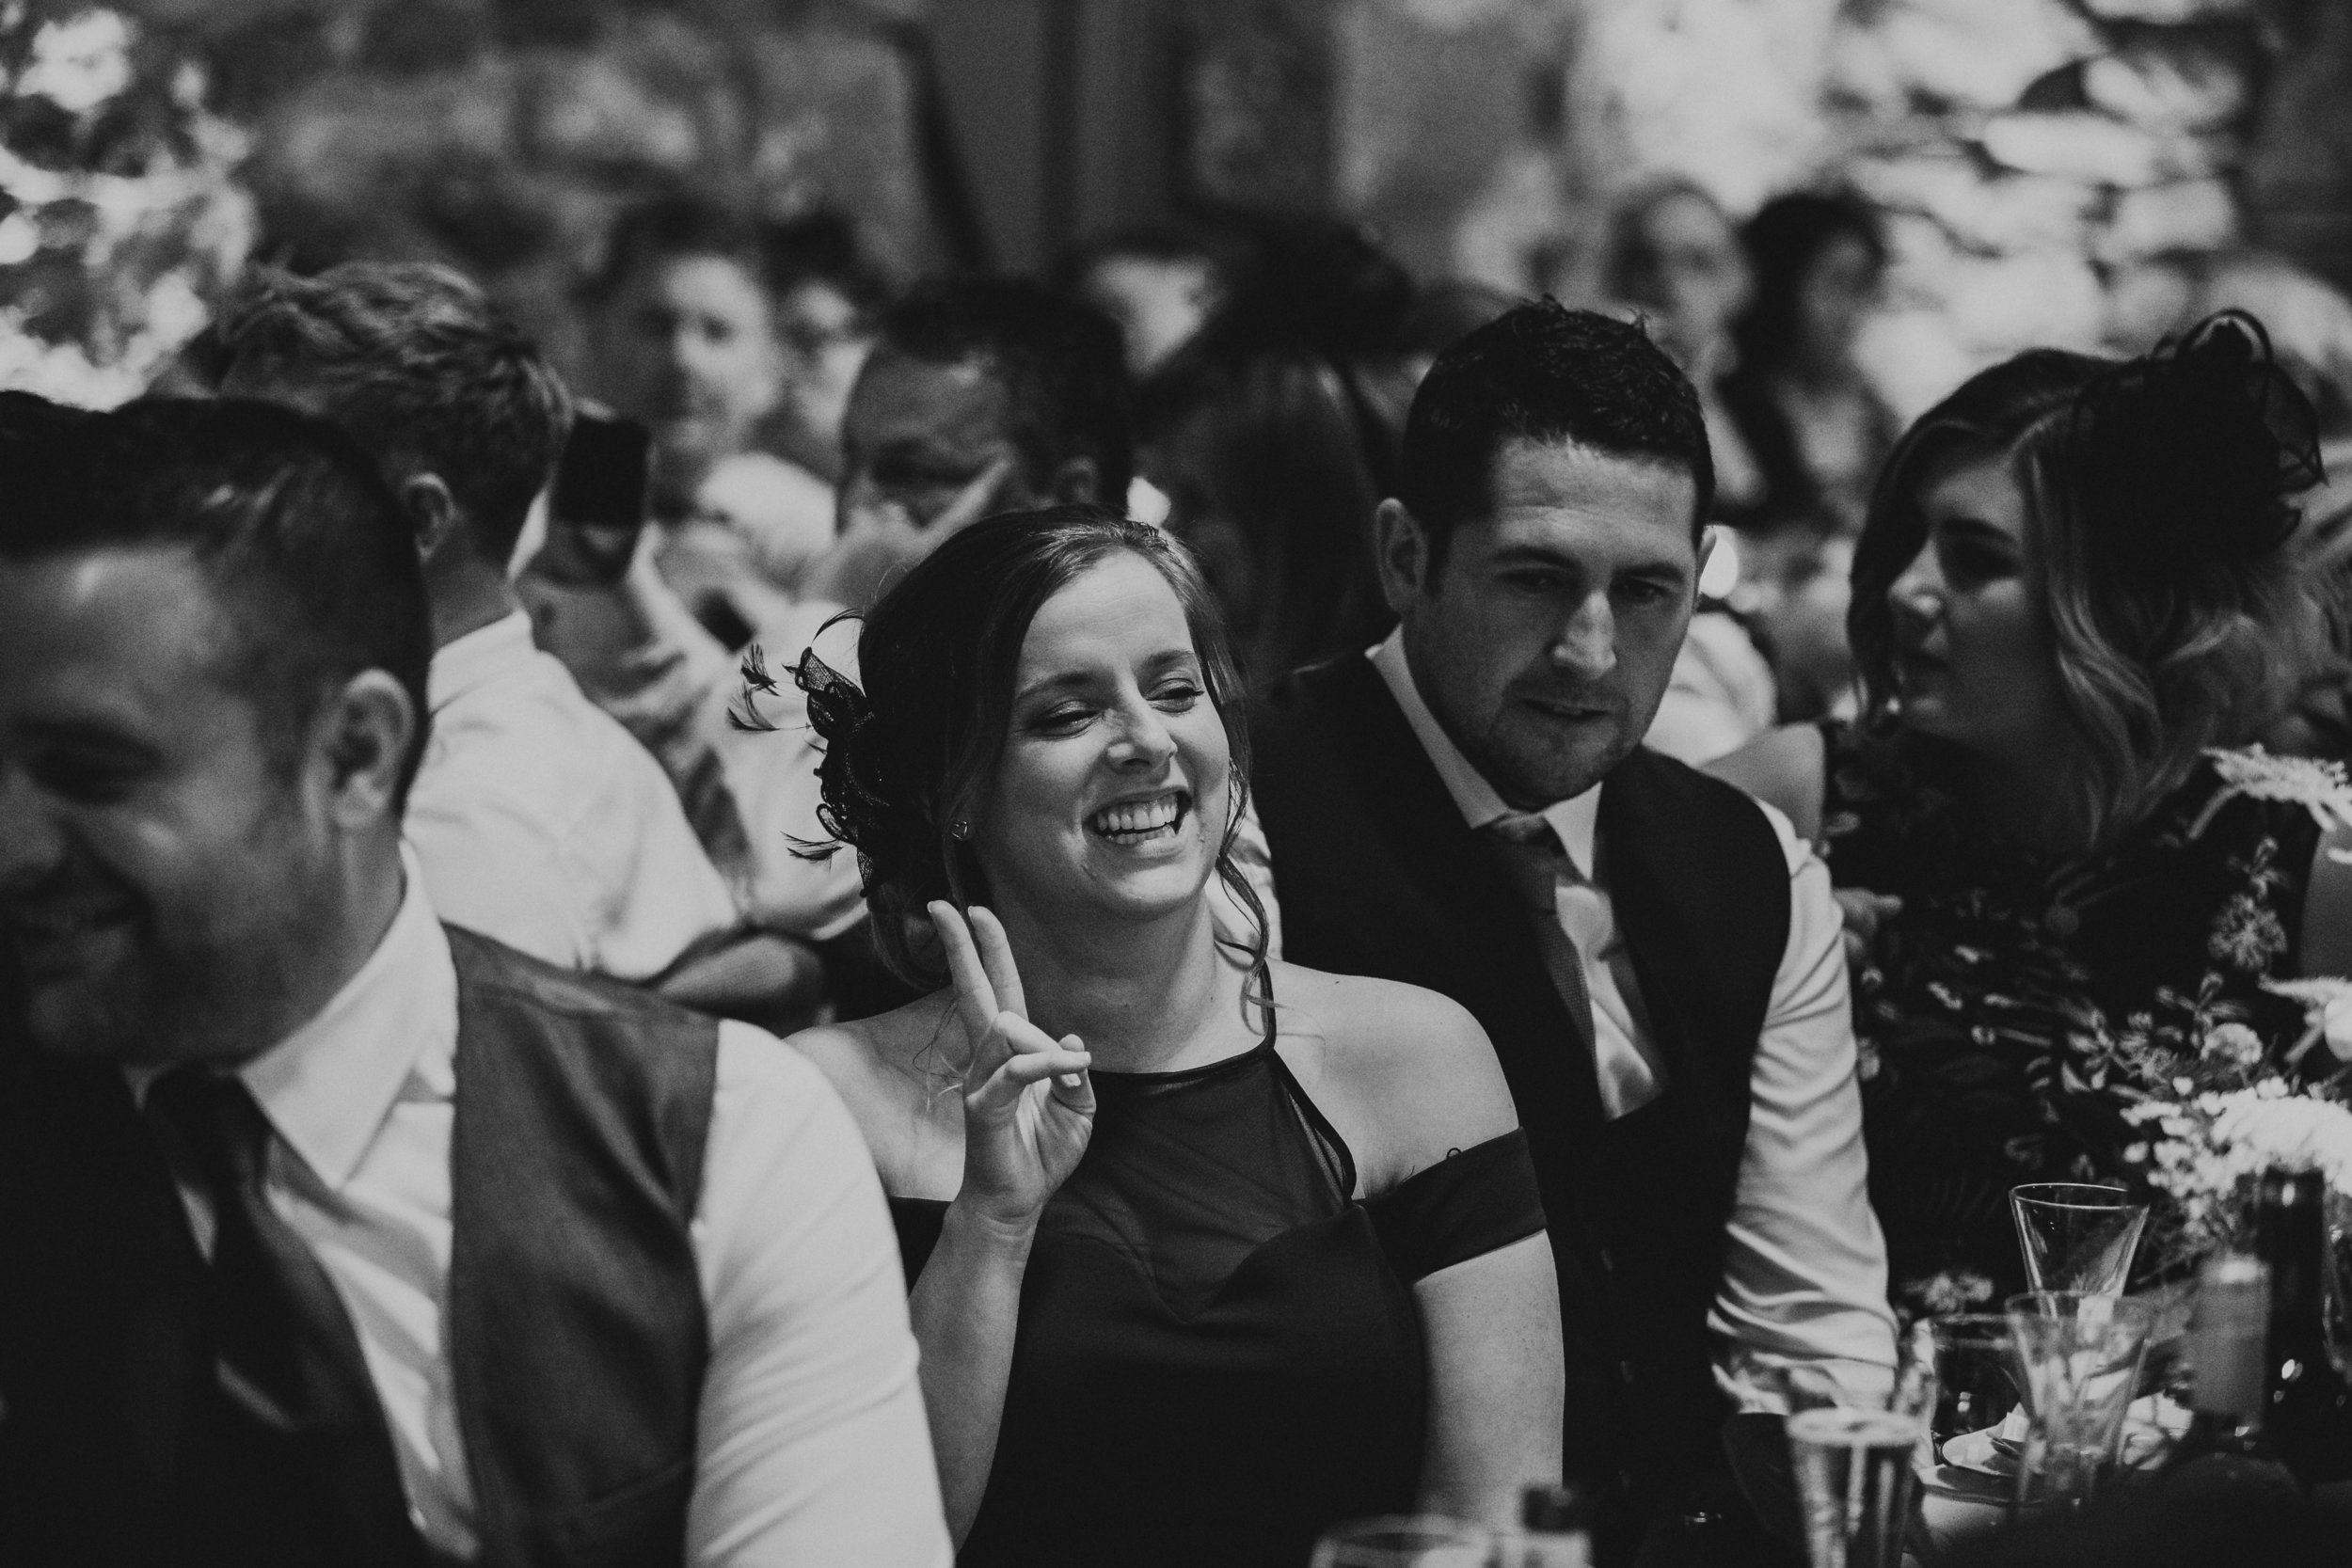 BYRE_AT_INCHYRA_WEDDING_PHOTOGRAPHER_PJ_PHILLIPS_PHOTOGRAPHY_KAYLEIGH_ANDREW_138.jpg